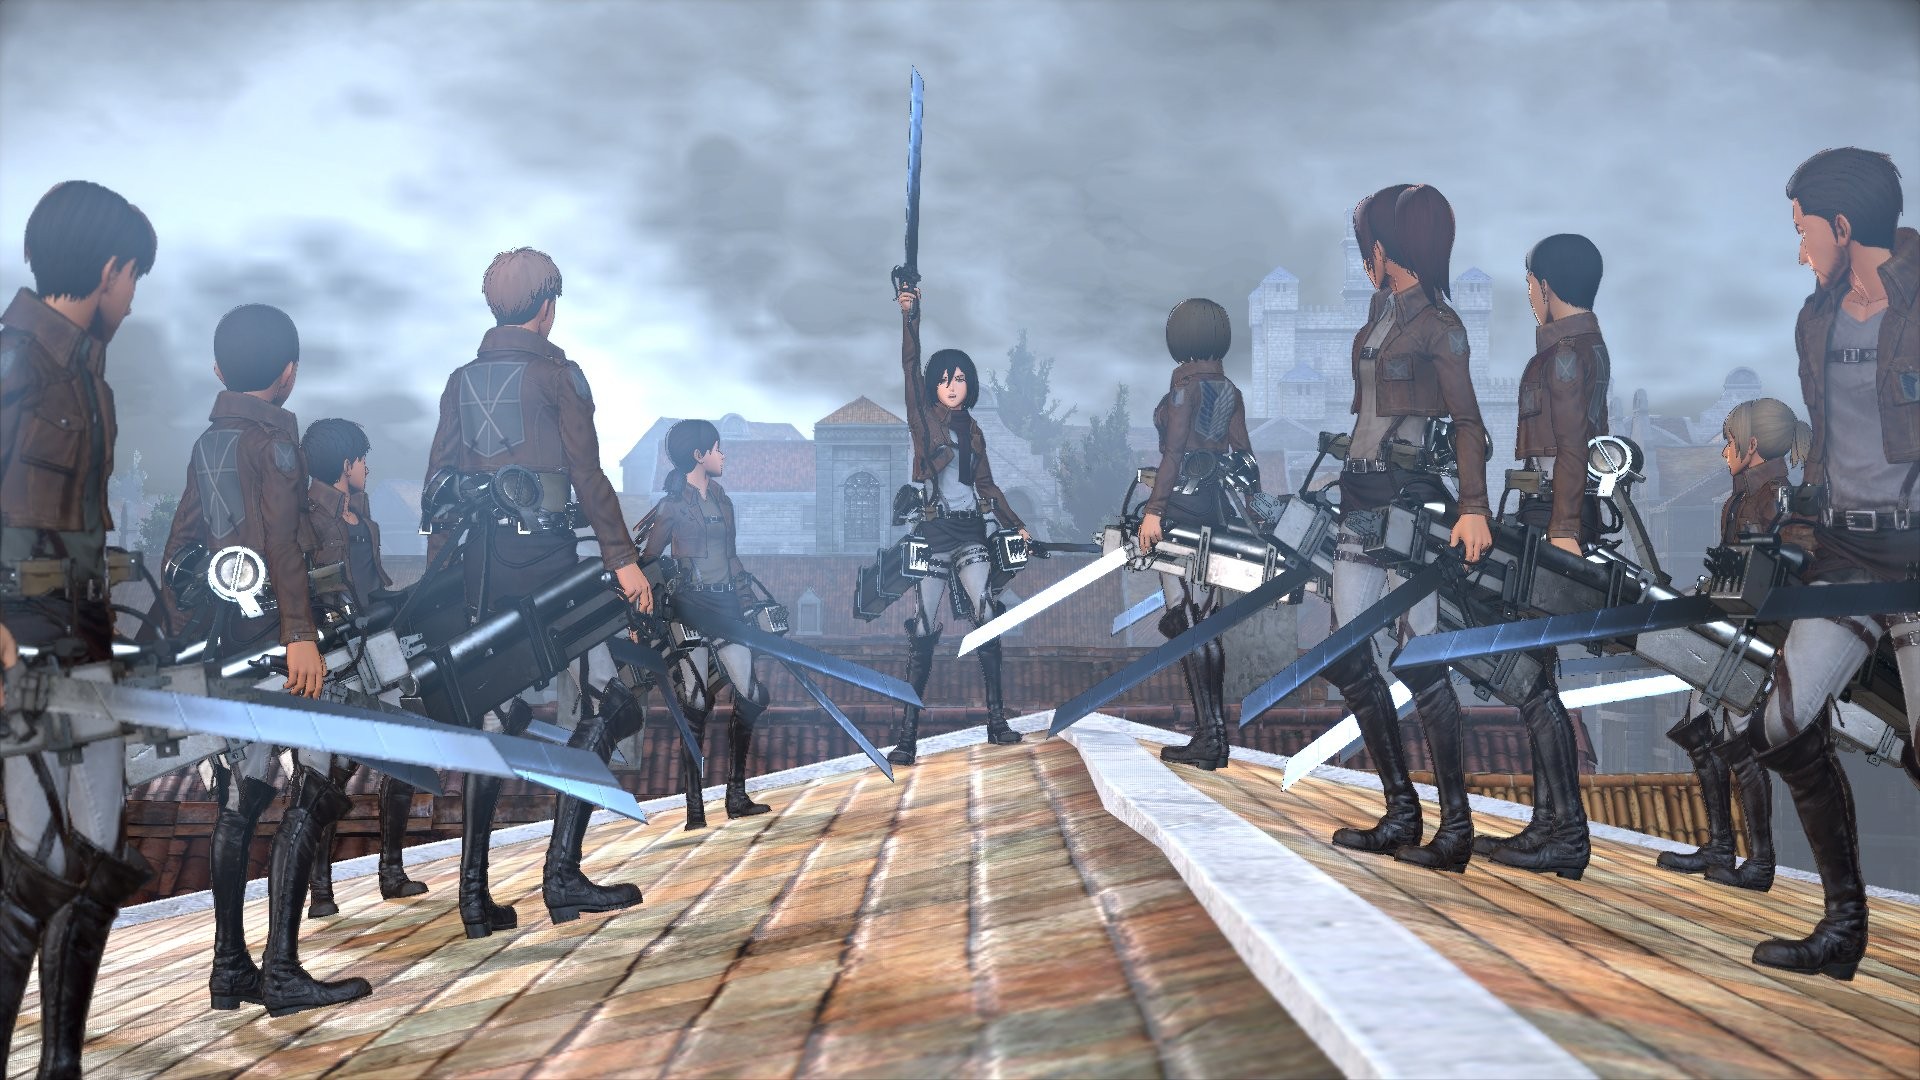 Attack on Titan Launches This Fall For PC, PS4 & Xbox One 4